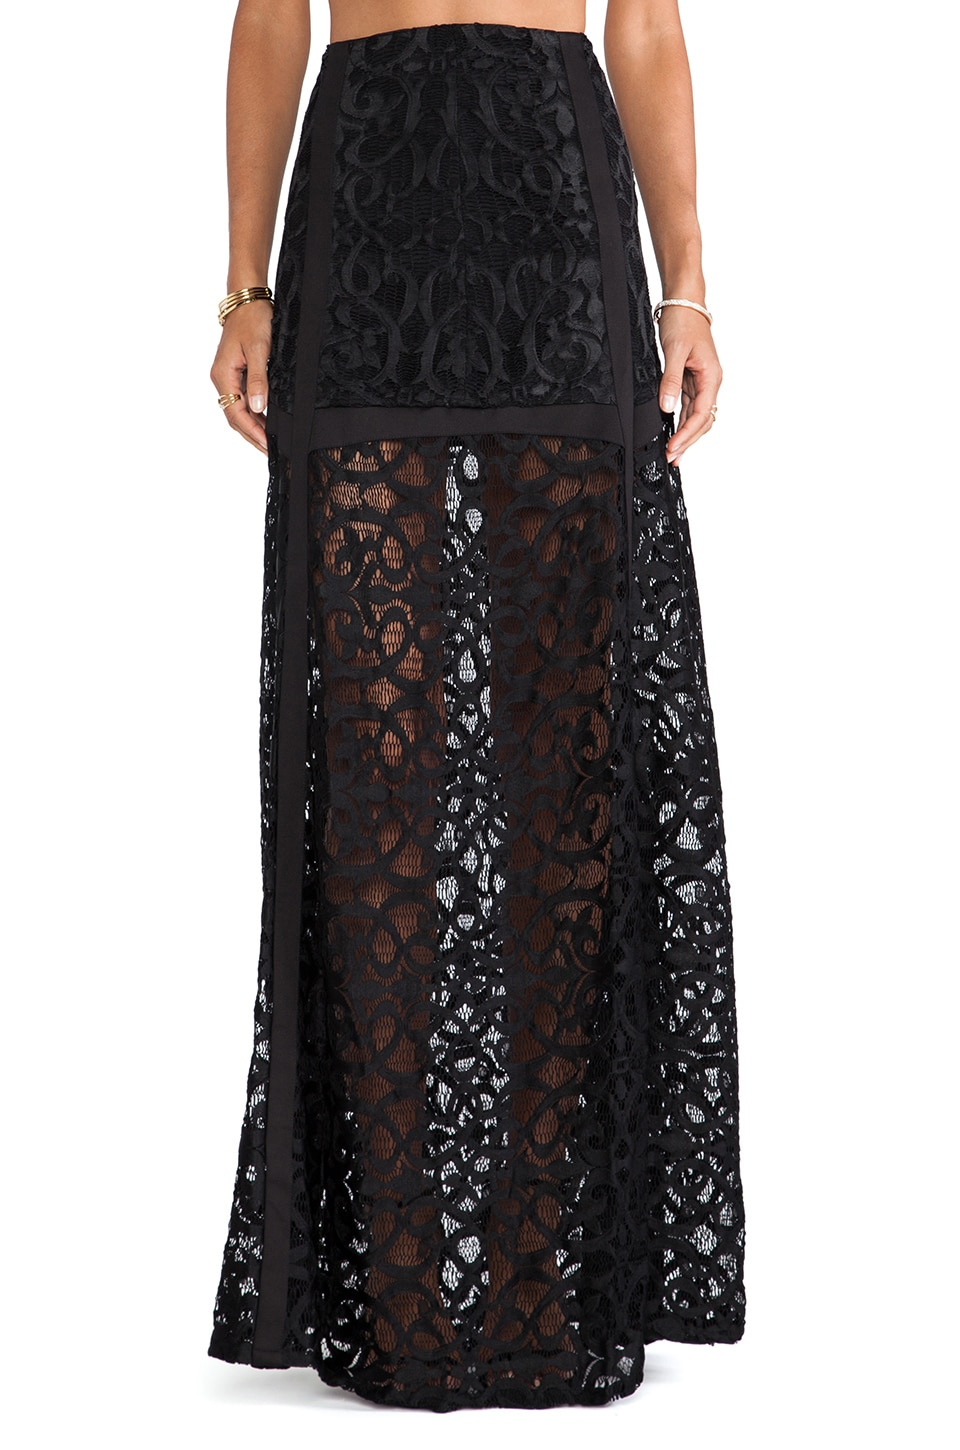 Alexis Krefeld Lace Maxi Skirt in Lurid Black